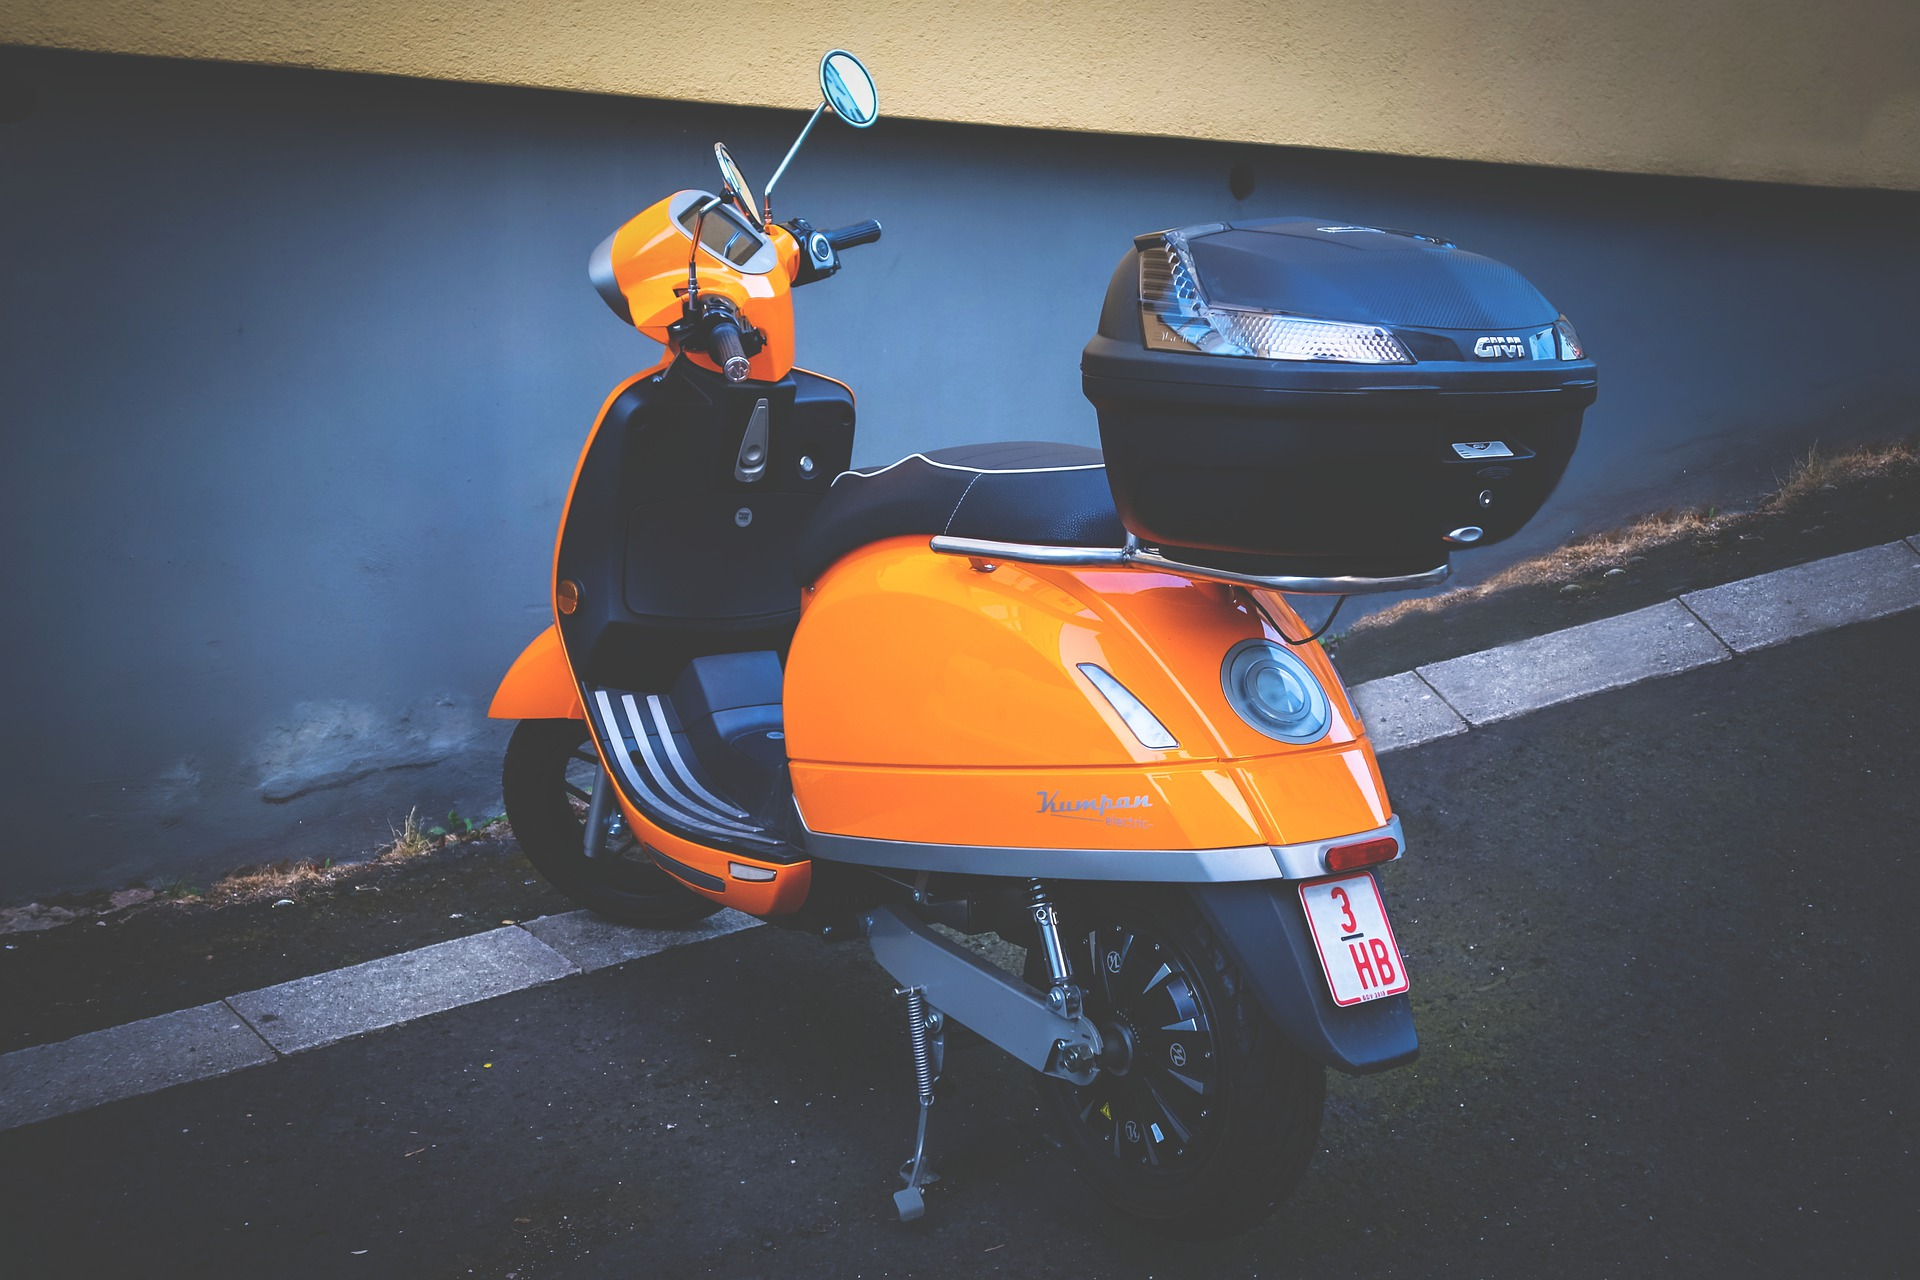 Electric Kick Scooter Market Growth 2021 Growing Rapidly with Recent Developments, Industry Share, Trends, Demand, Key Findings and Forecast Research Report 2031